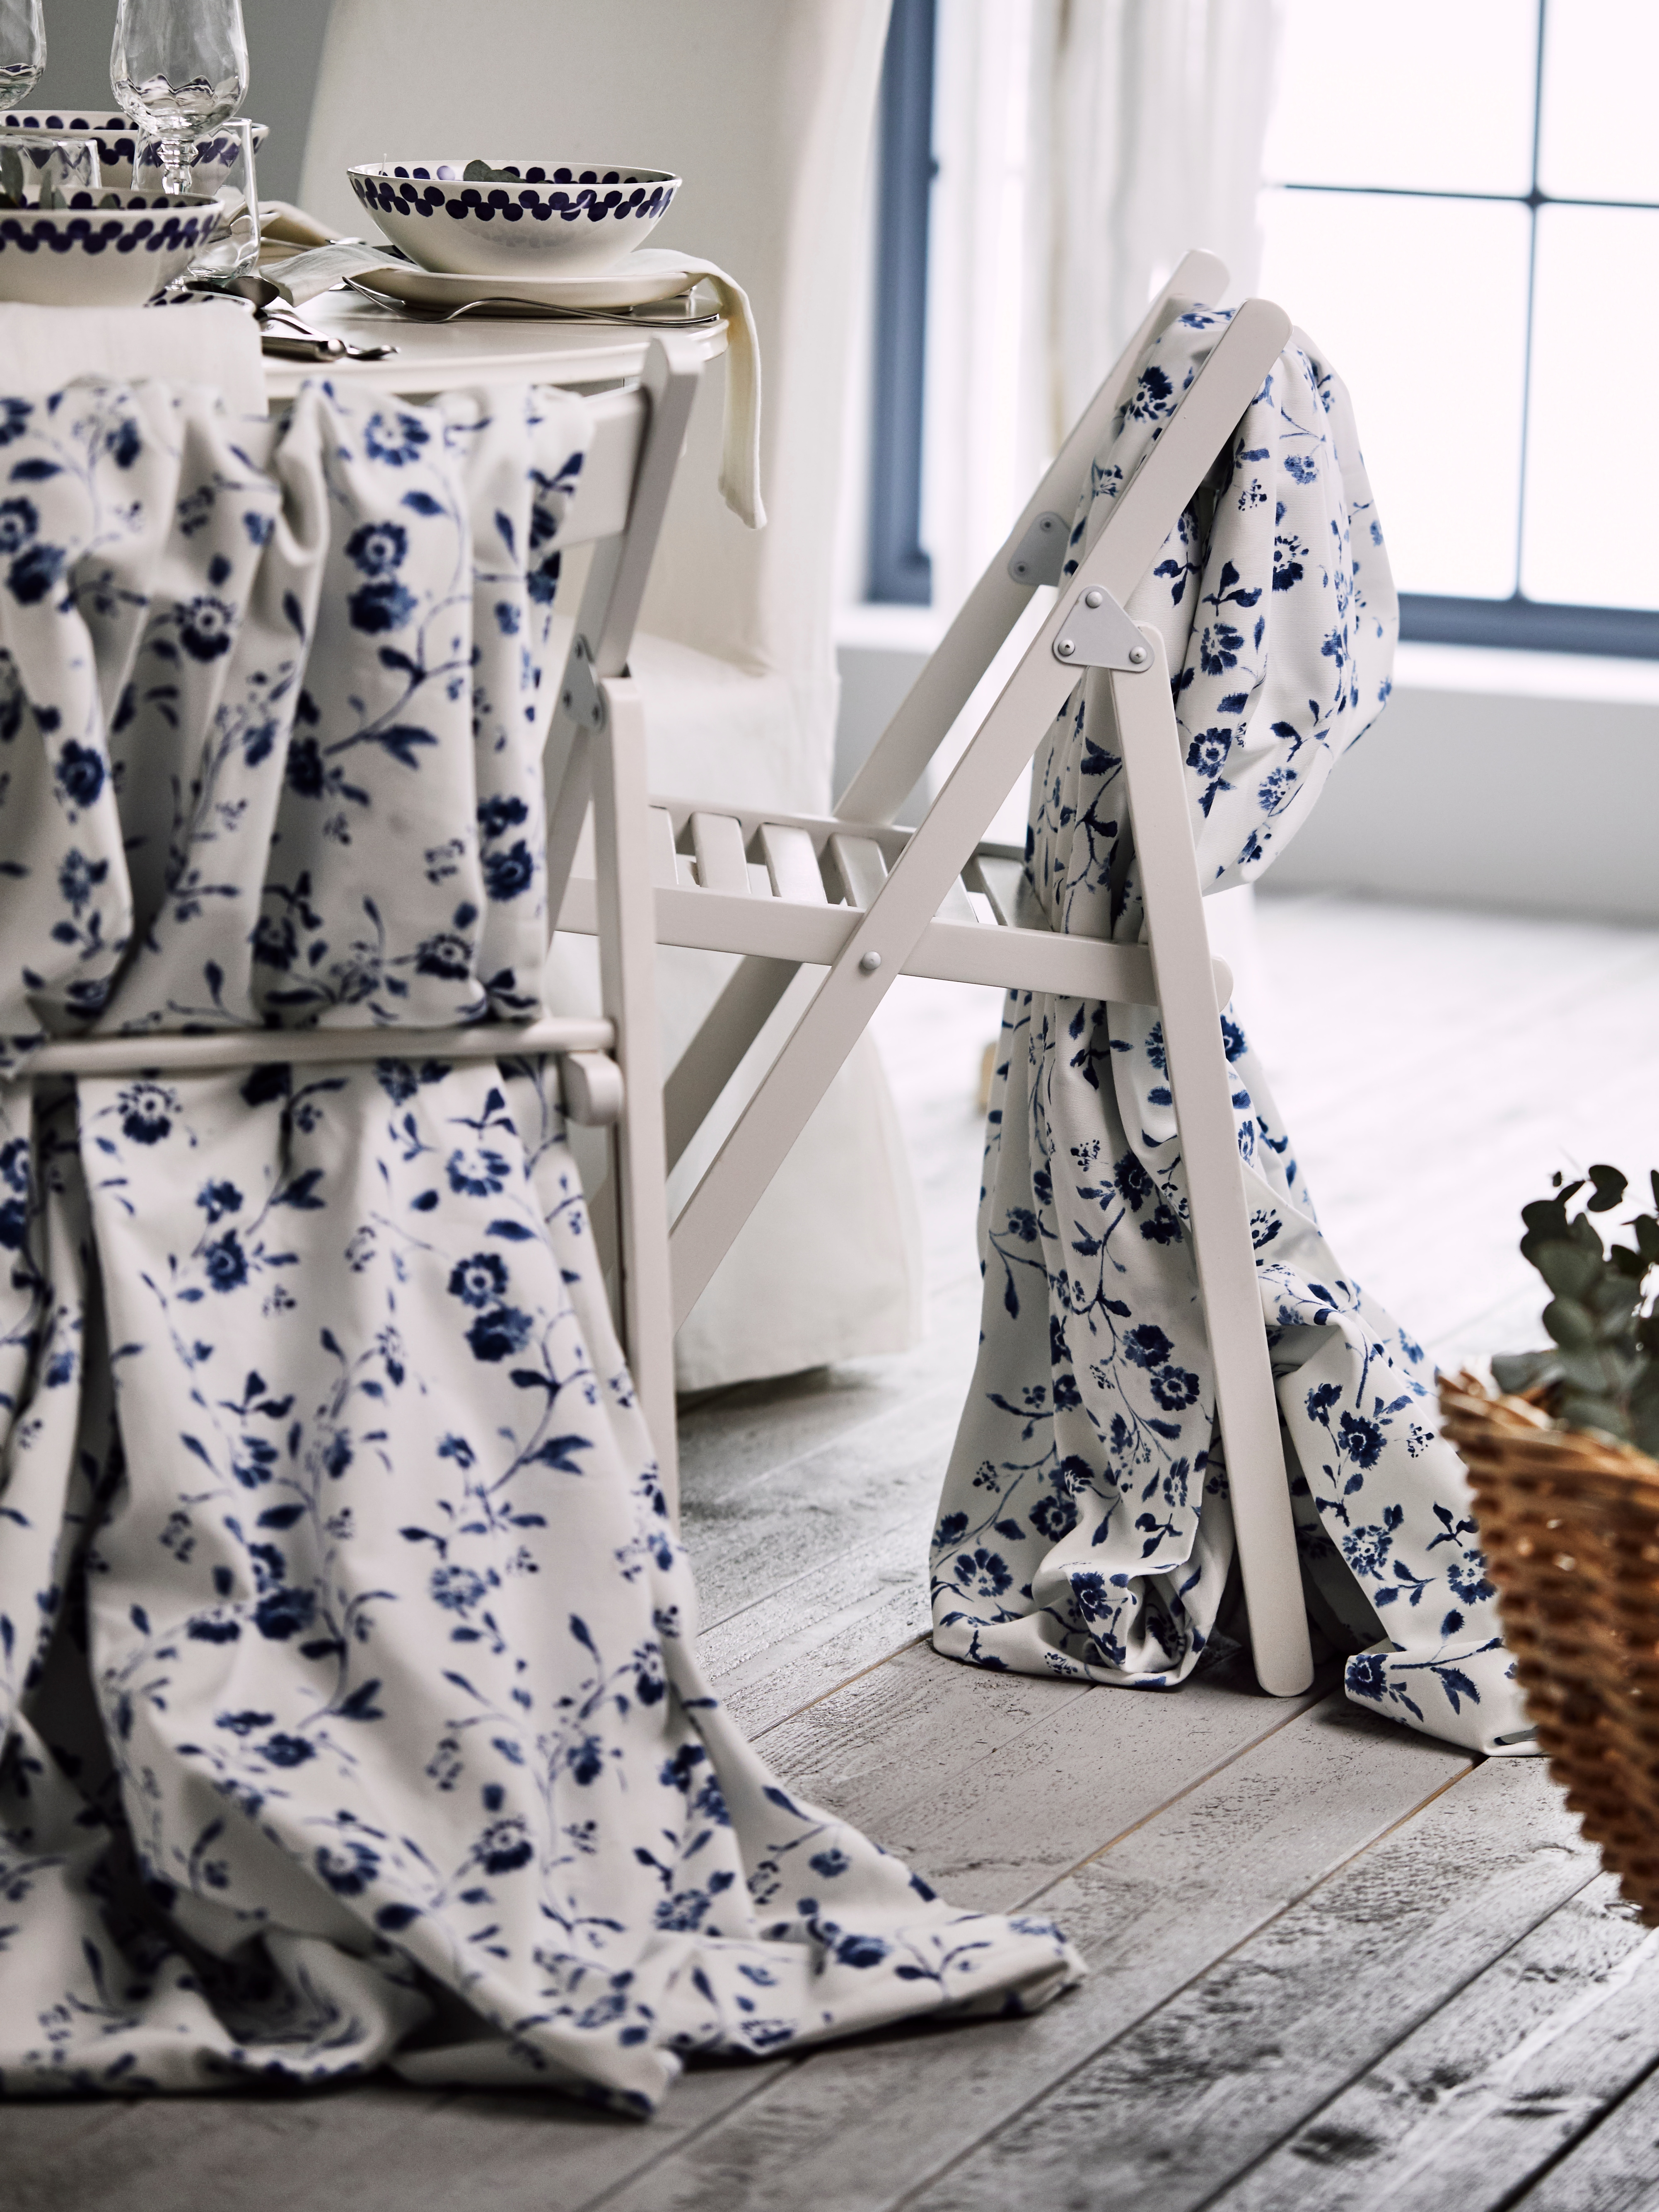 A close-up of white TERJE folding chairs with white-and-blue fabric draped on the backs, by a dining table in a bright room.